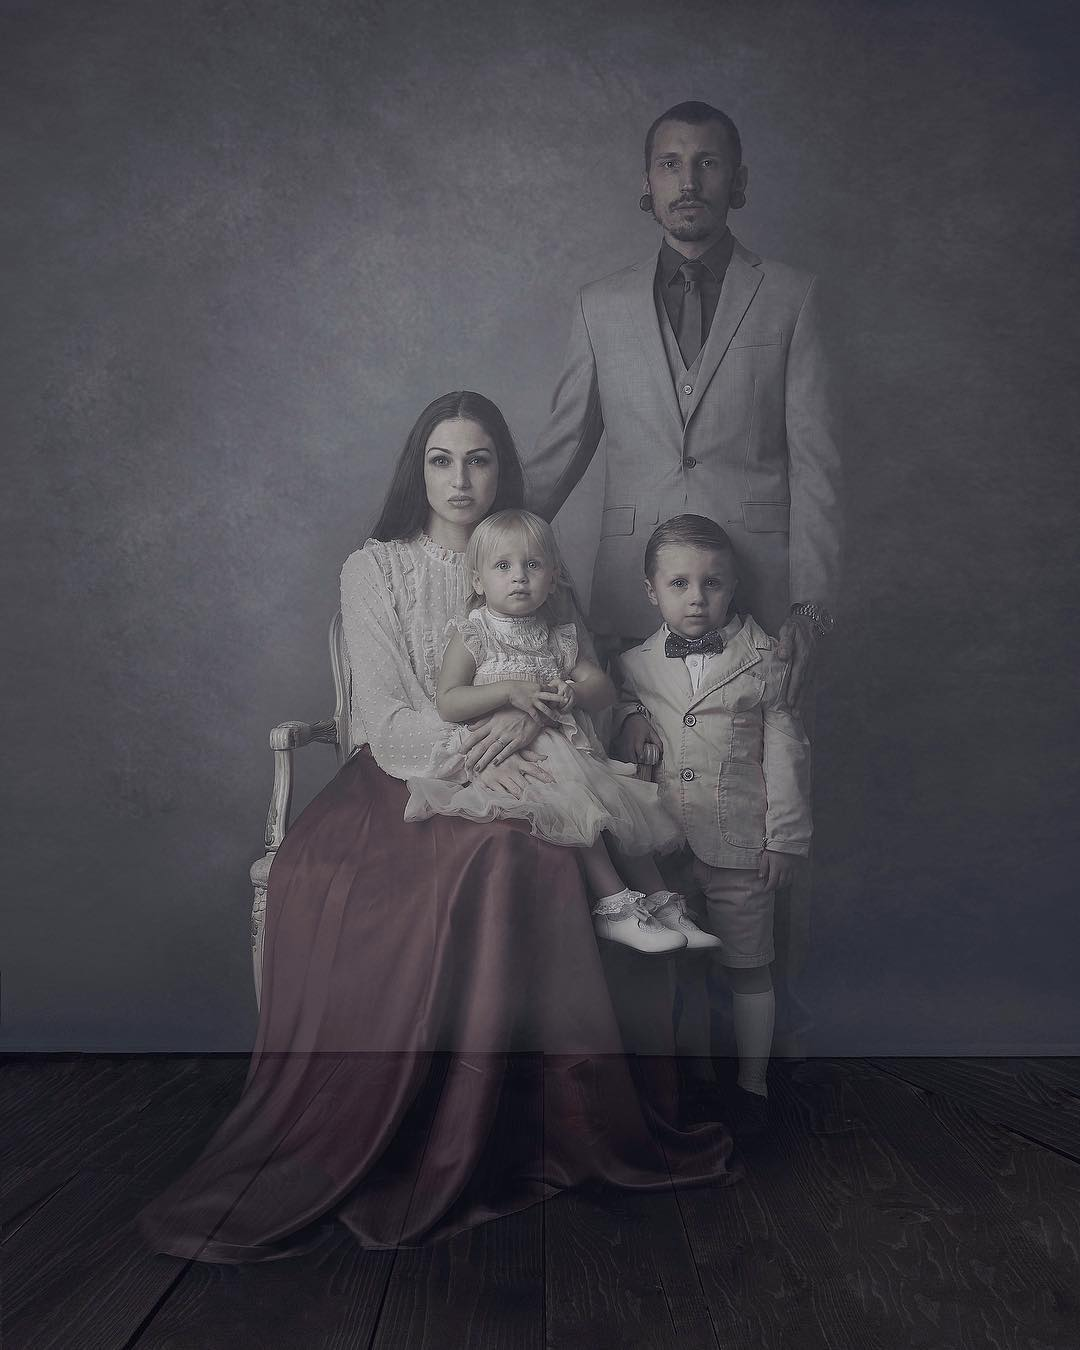 Photographer Creates Ghostly Imagery with Her Family